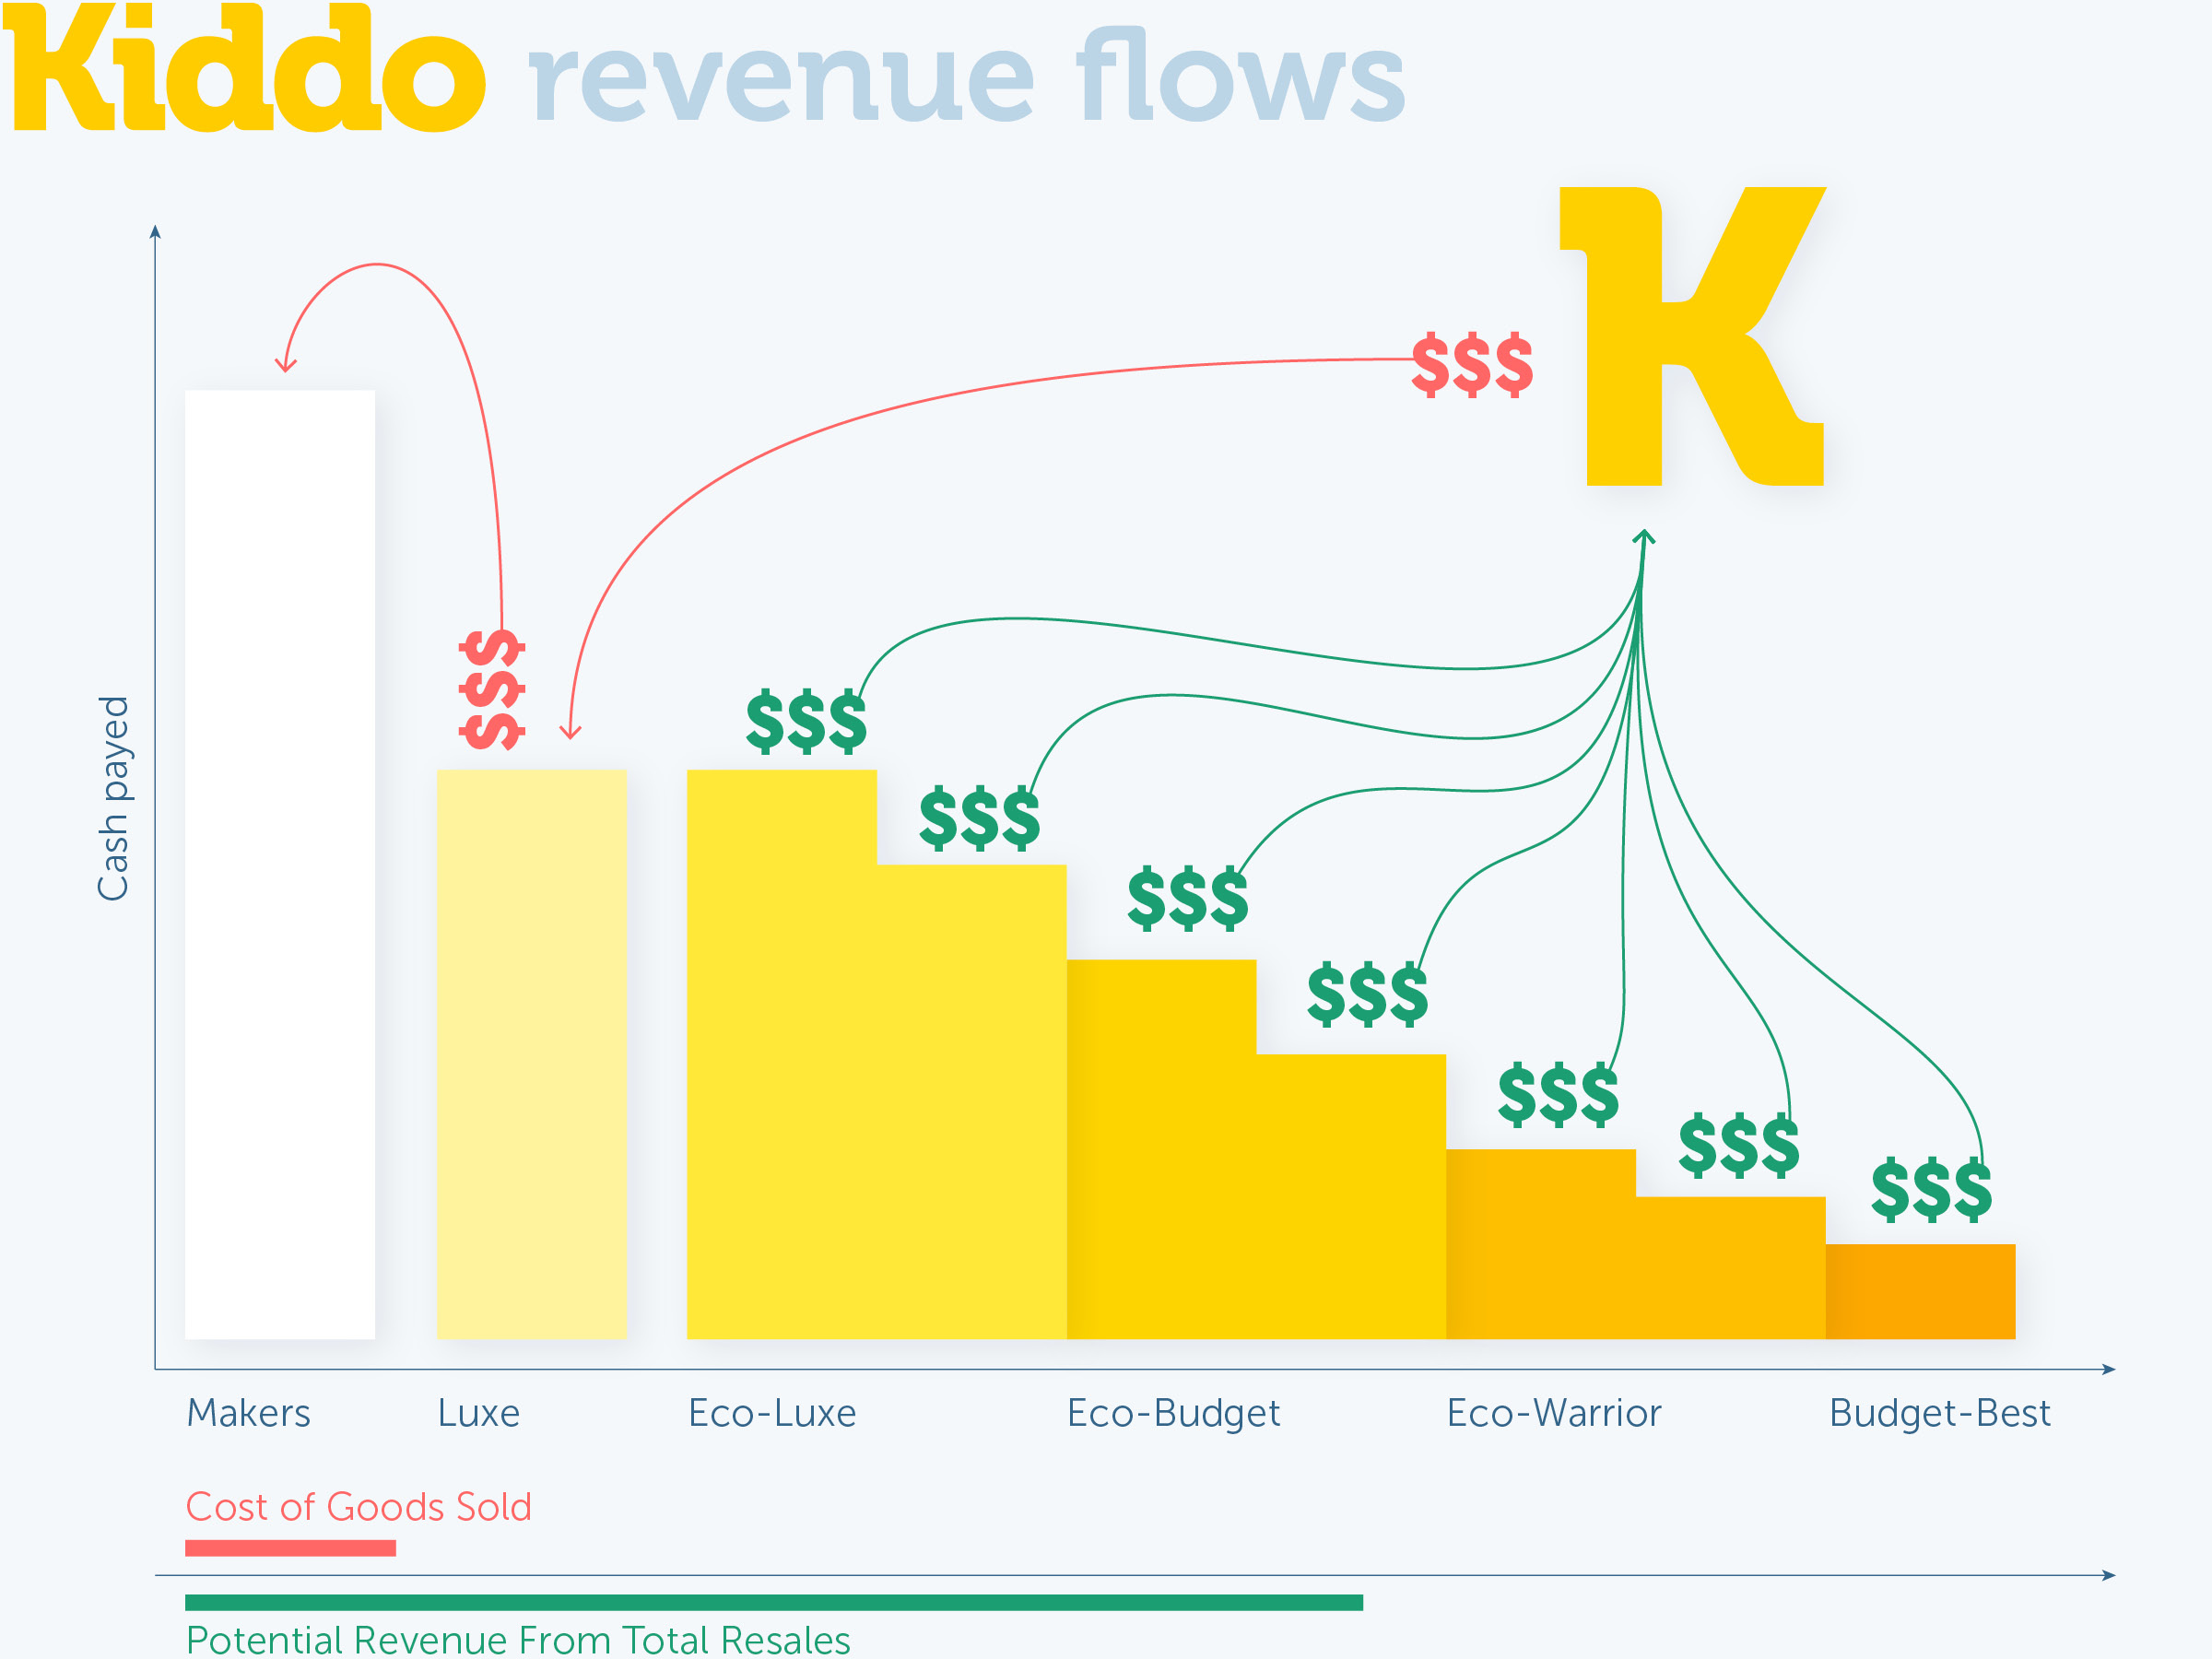 Kiddo Revenue Flows